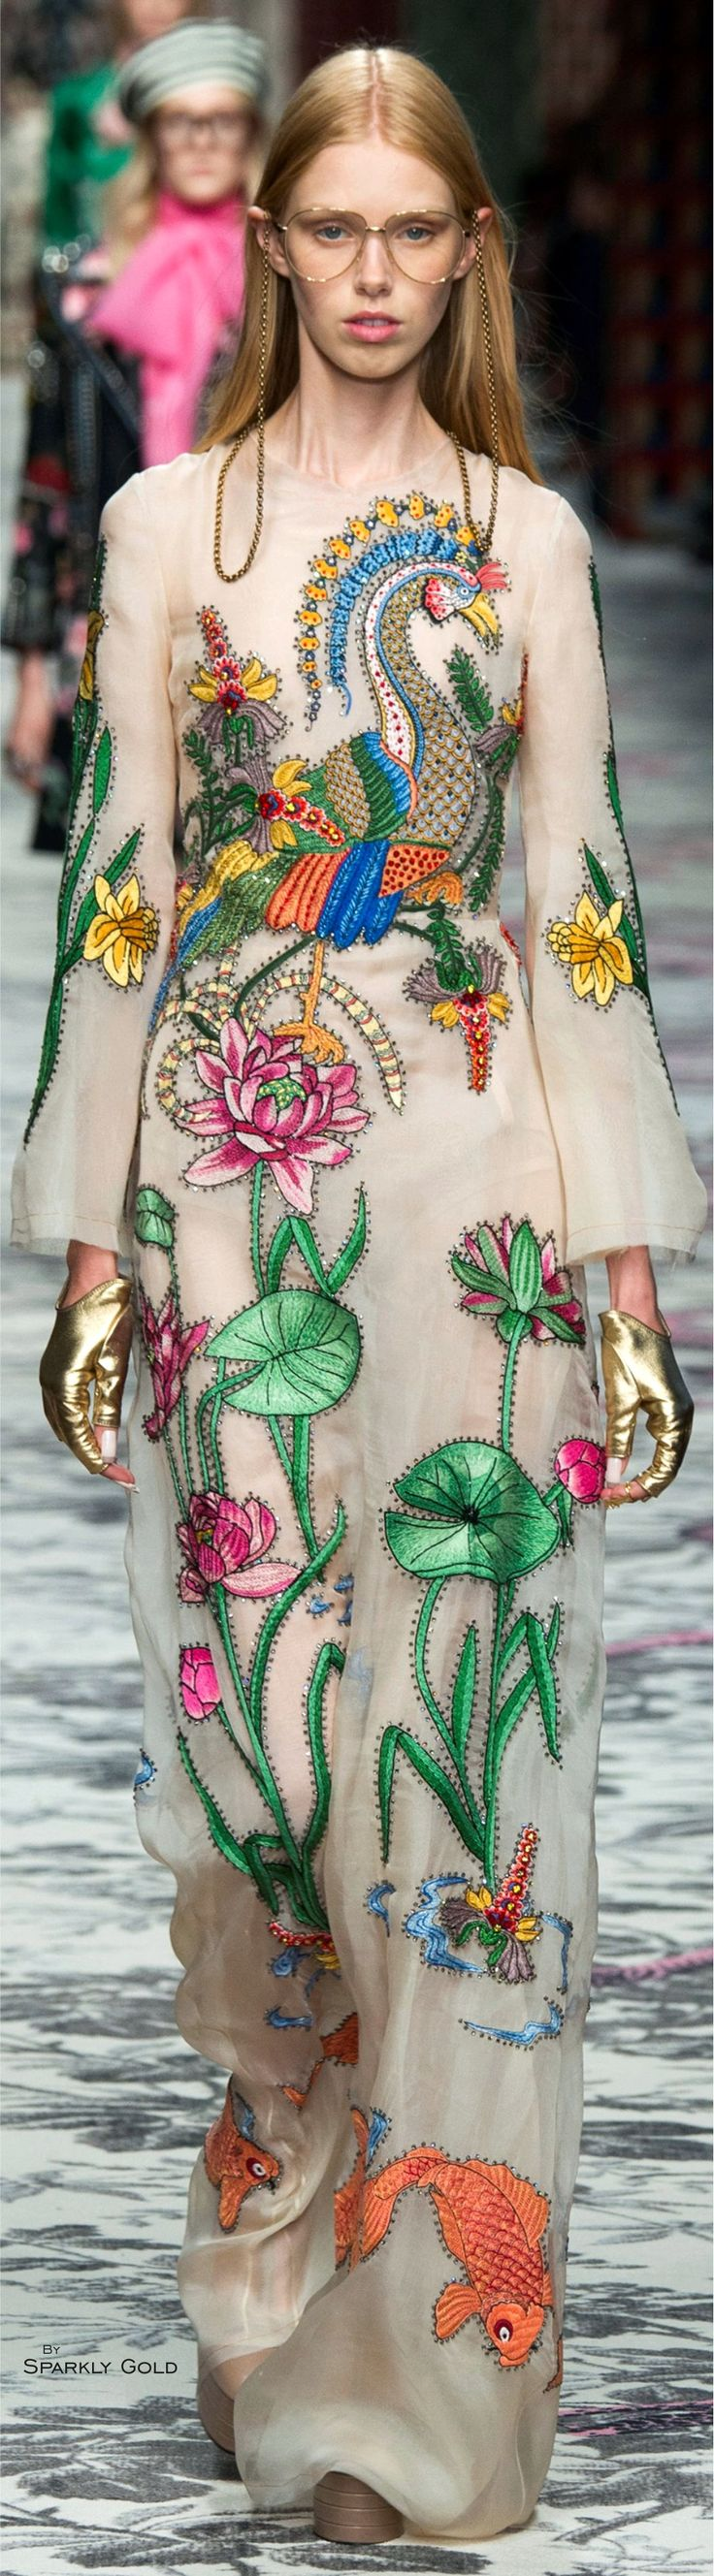 Gucci Spring 2016 - Hate the Terry Richardson glasses, long nails, and platform boots, super creepy, but gown and gloves are magic.